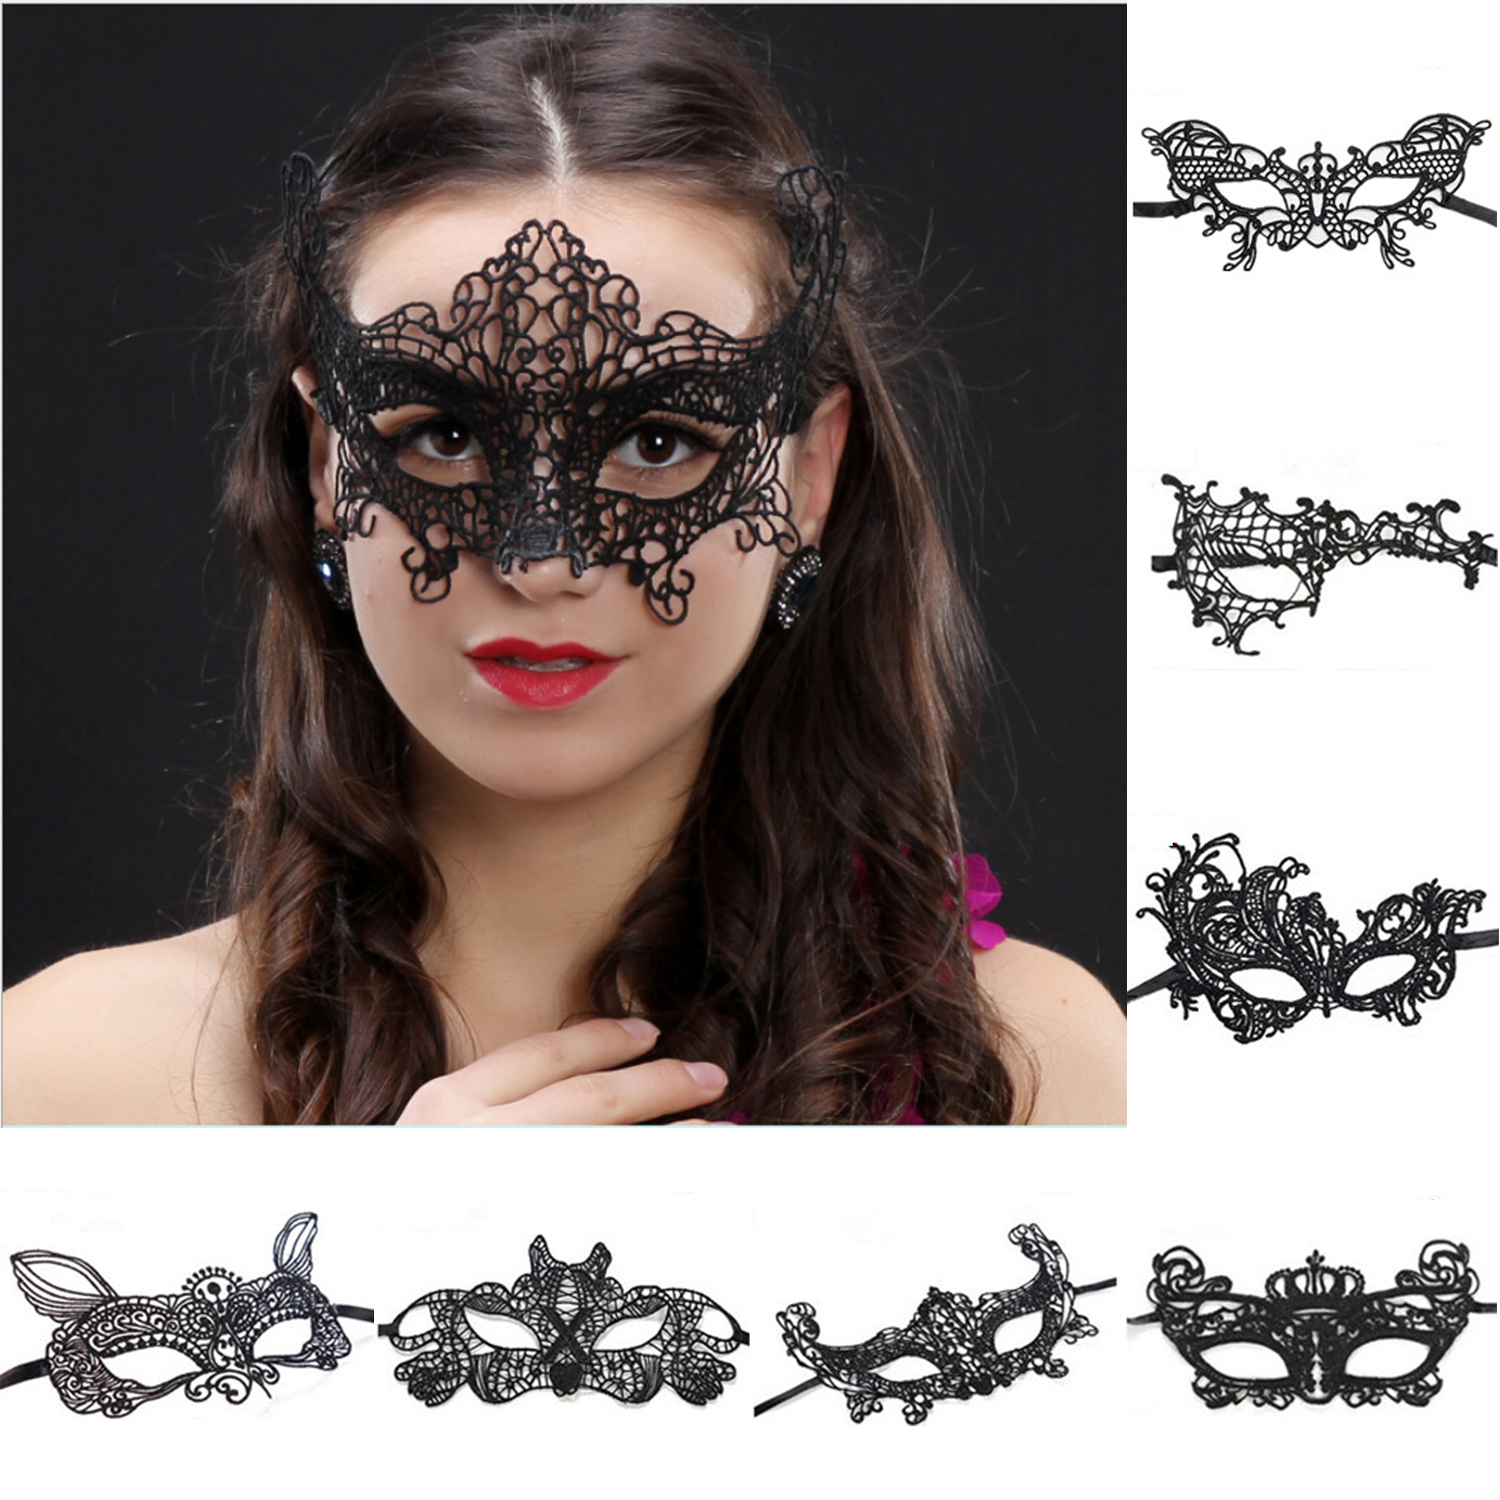 Brocade Crystal Masquerade Ball Victorian Antique Mysterious Fancy Lace Eye Mask